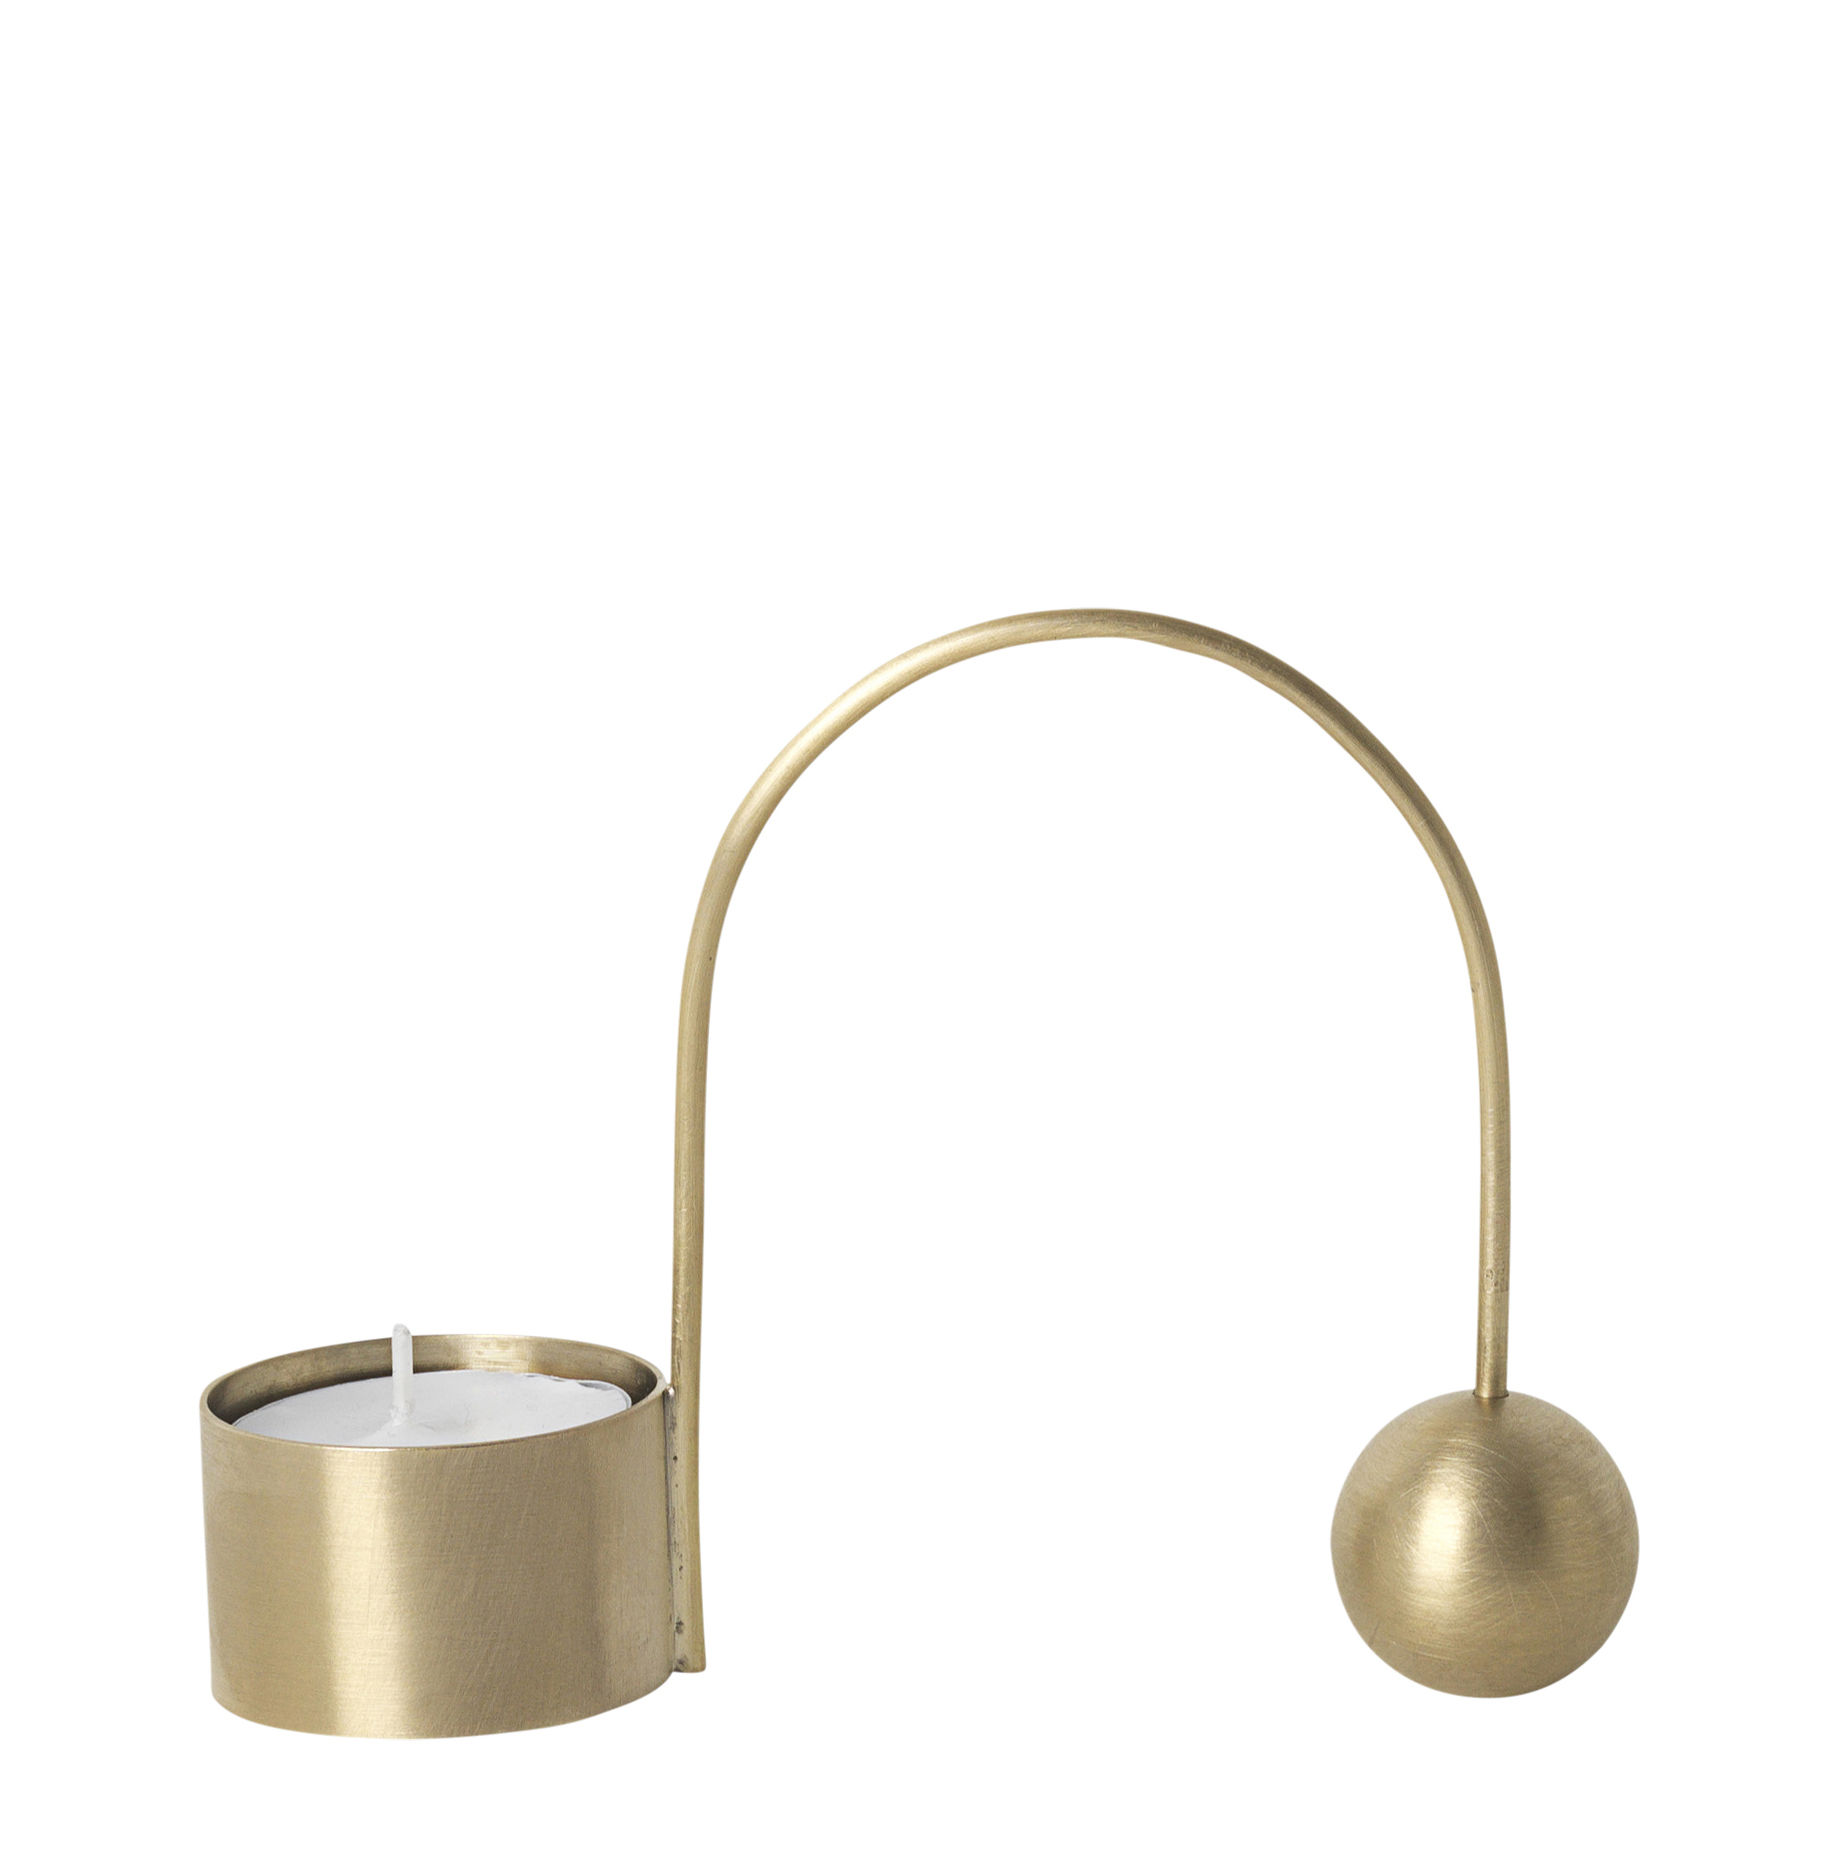 Decoration - Candles & Candle Holders - Balance Candle stick - / Tealight candle by Ferm Living - Tealight candle / Brass - Solid brass